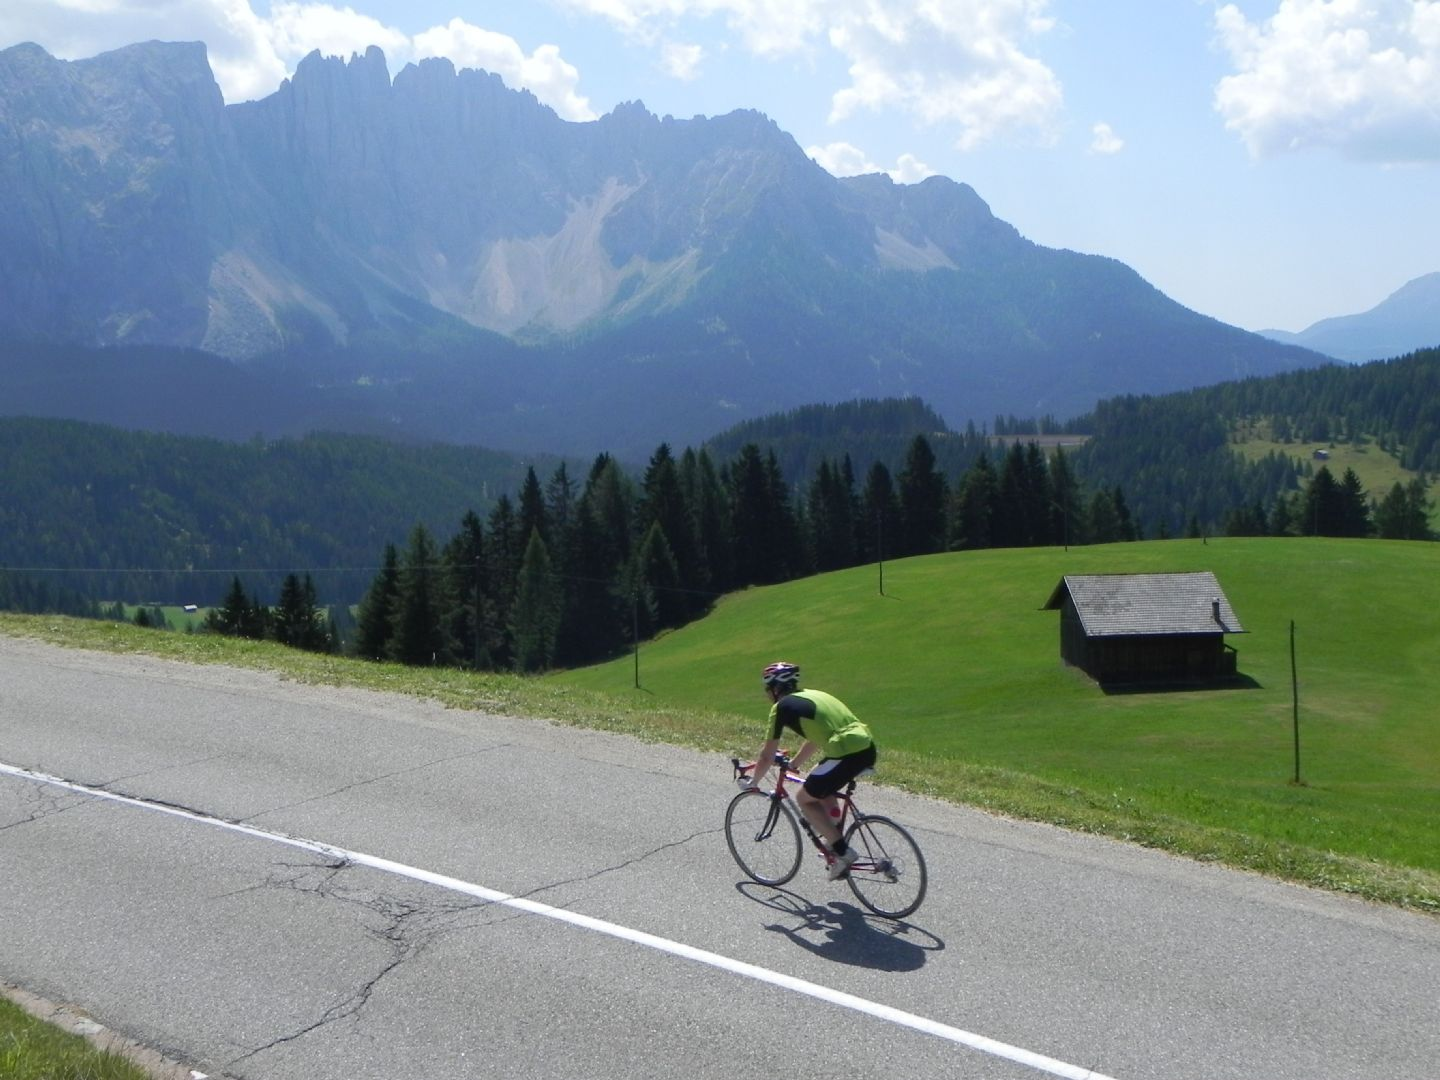 DolomitesRoadCycling5.jpg - Italy - Dolomites and Alps - Italia Road Cycling